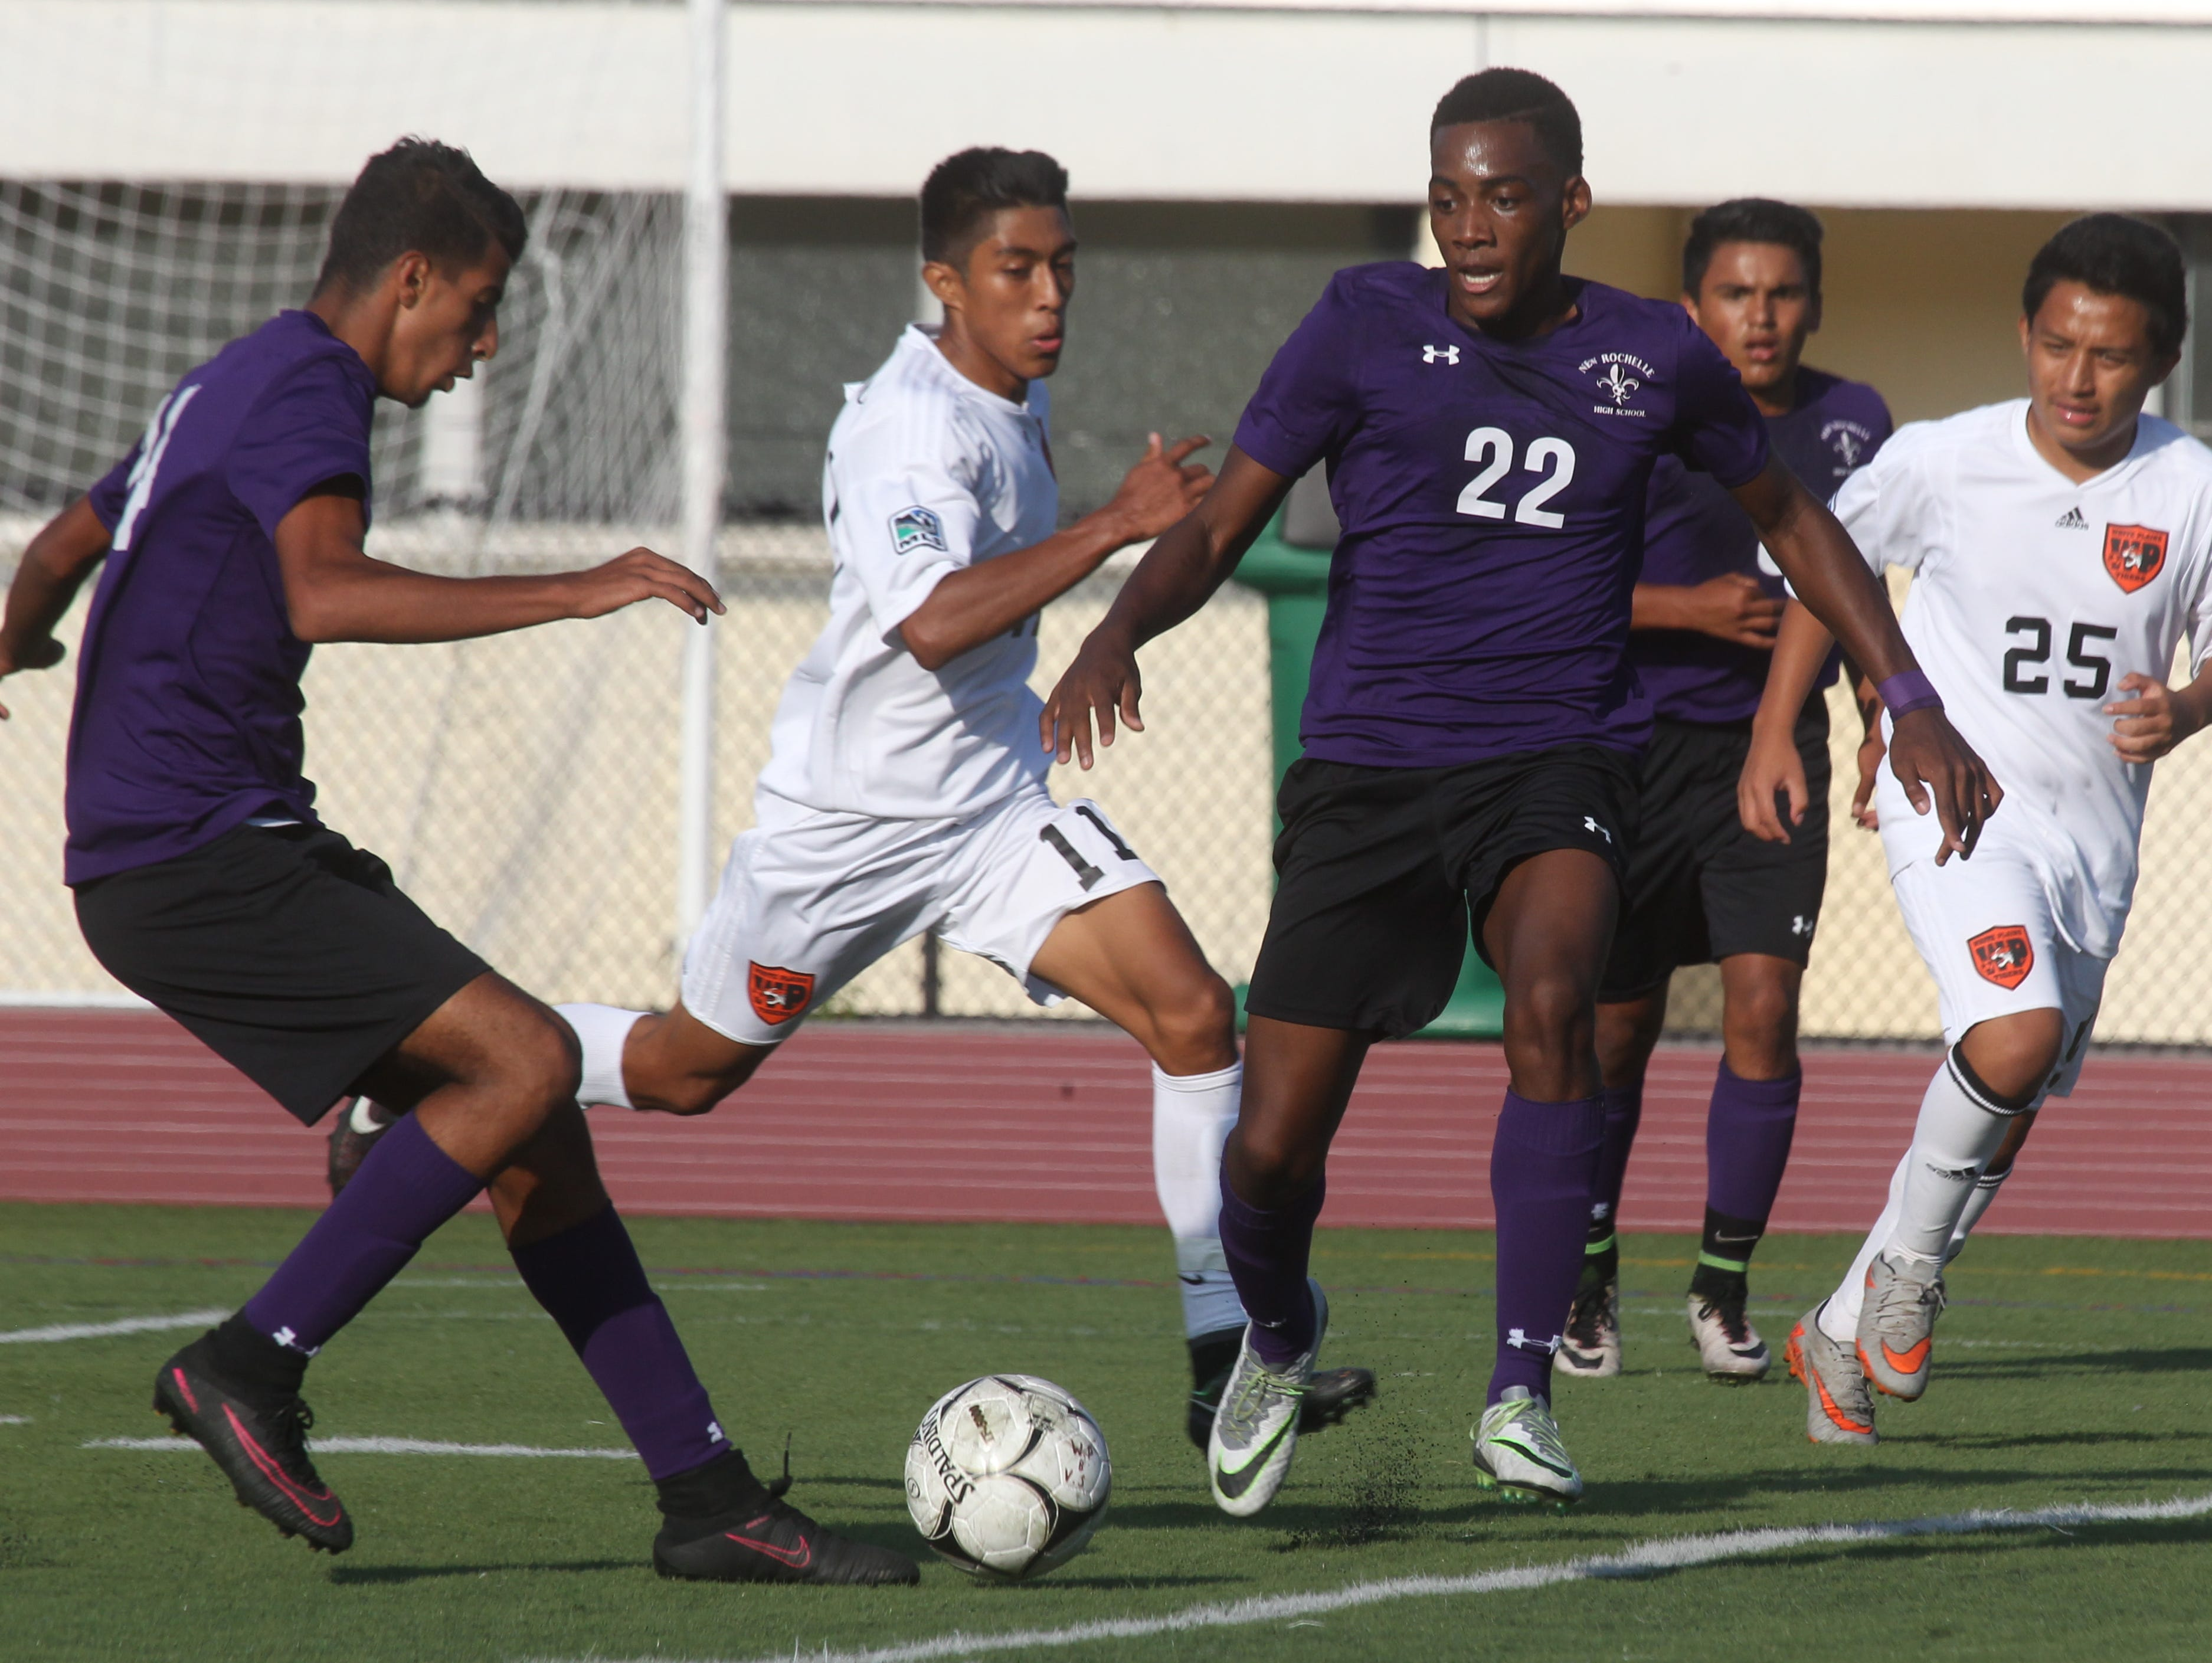 New Rochelle's Harwan Alzuabidi, left, and Tremaine Bryant (22) are pressured by White Plains' Levin Gramajio (11) during their game at White Plains Sept. 26, 2016. New Rochelle won 2-0.